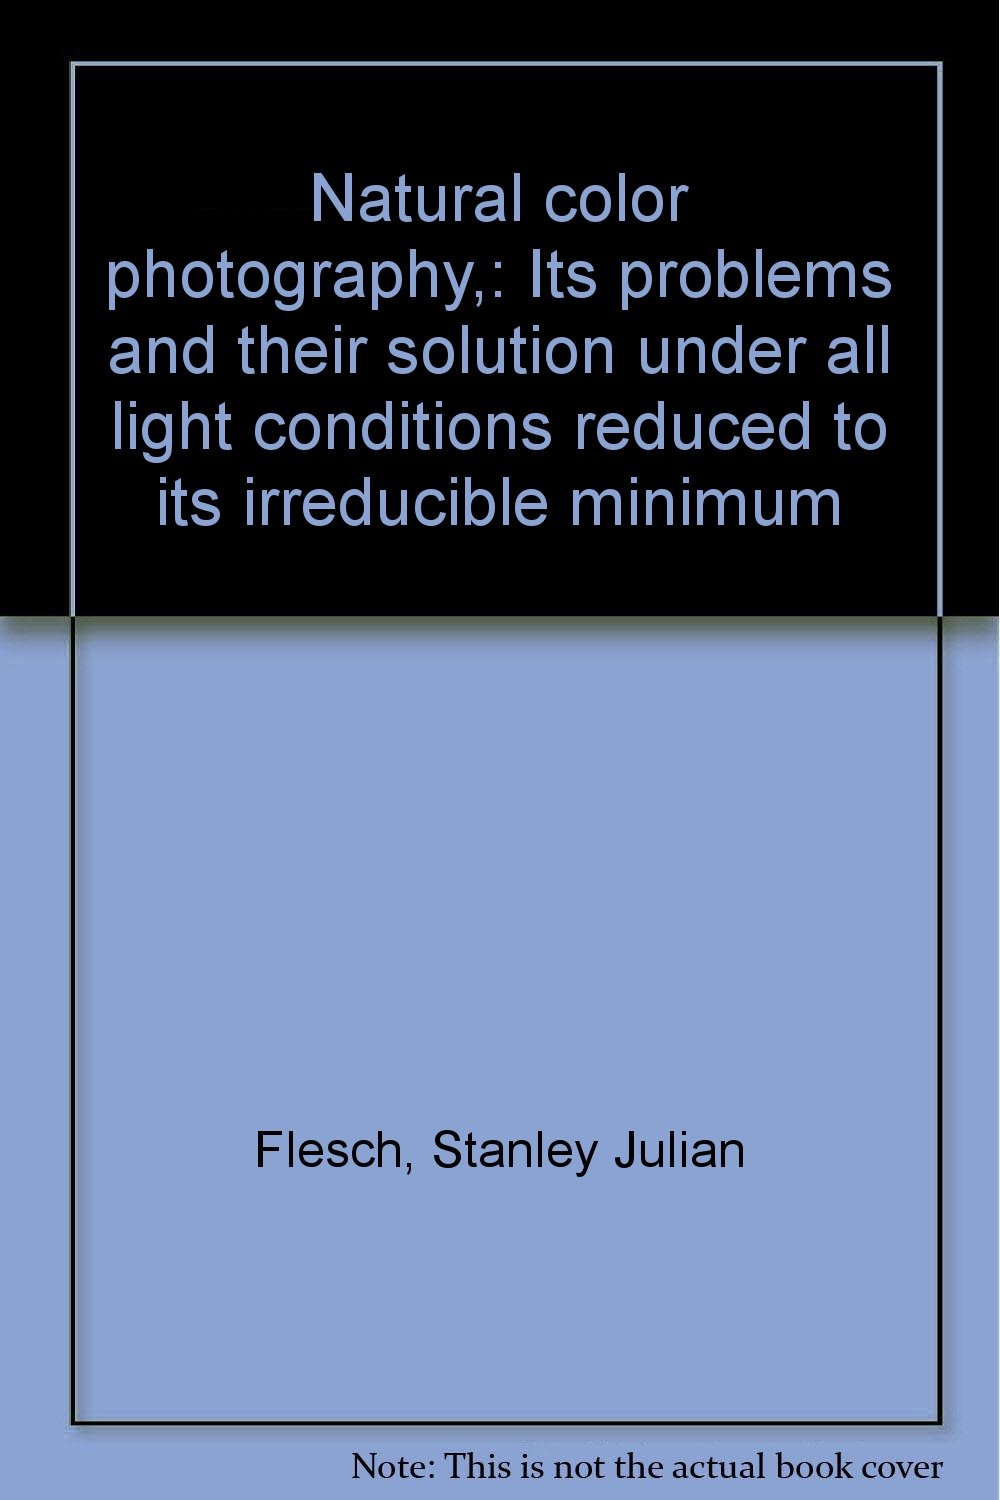 natural-color-photography-its-problems-and-their-solution-under-all-light-conditions-reduced-to-its-irreducible-minimum